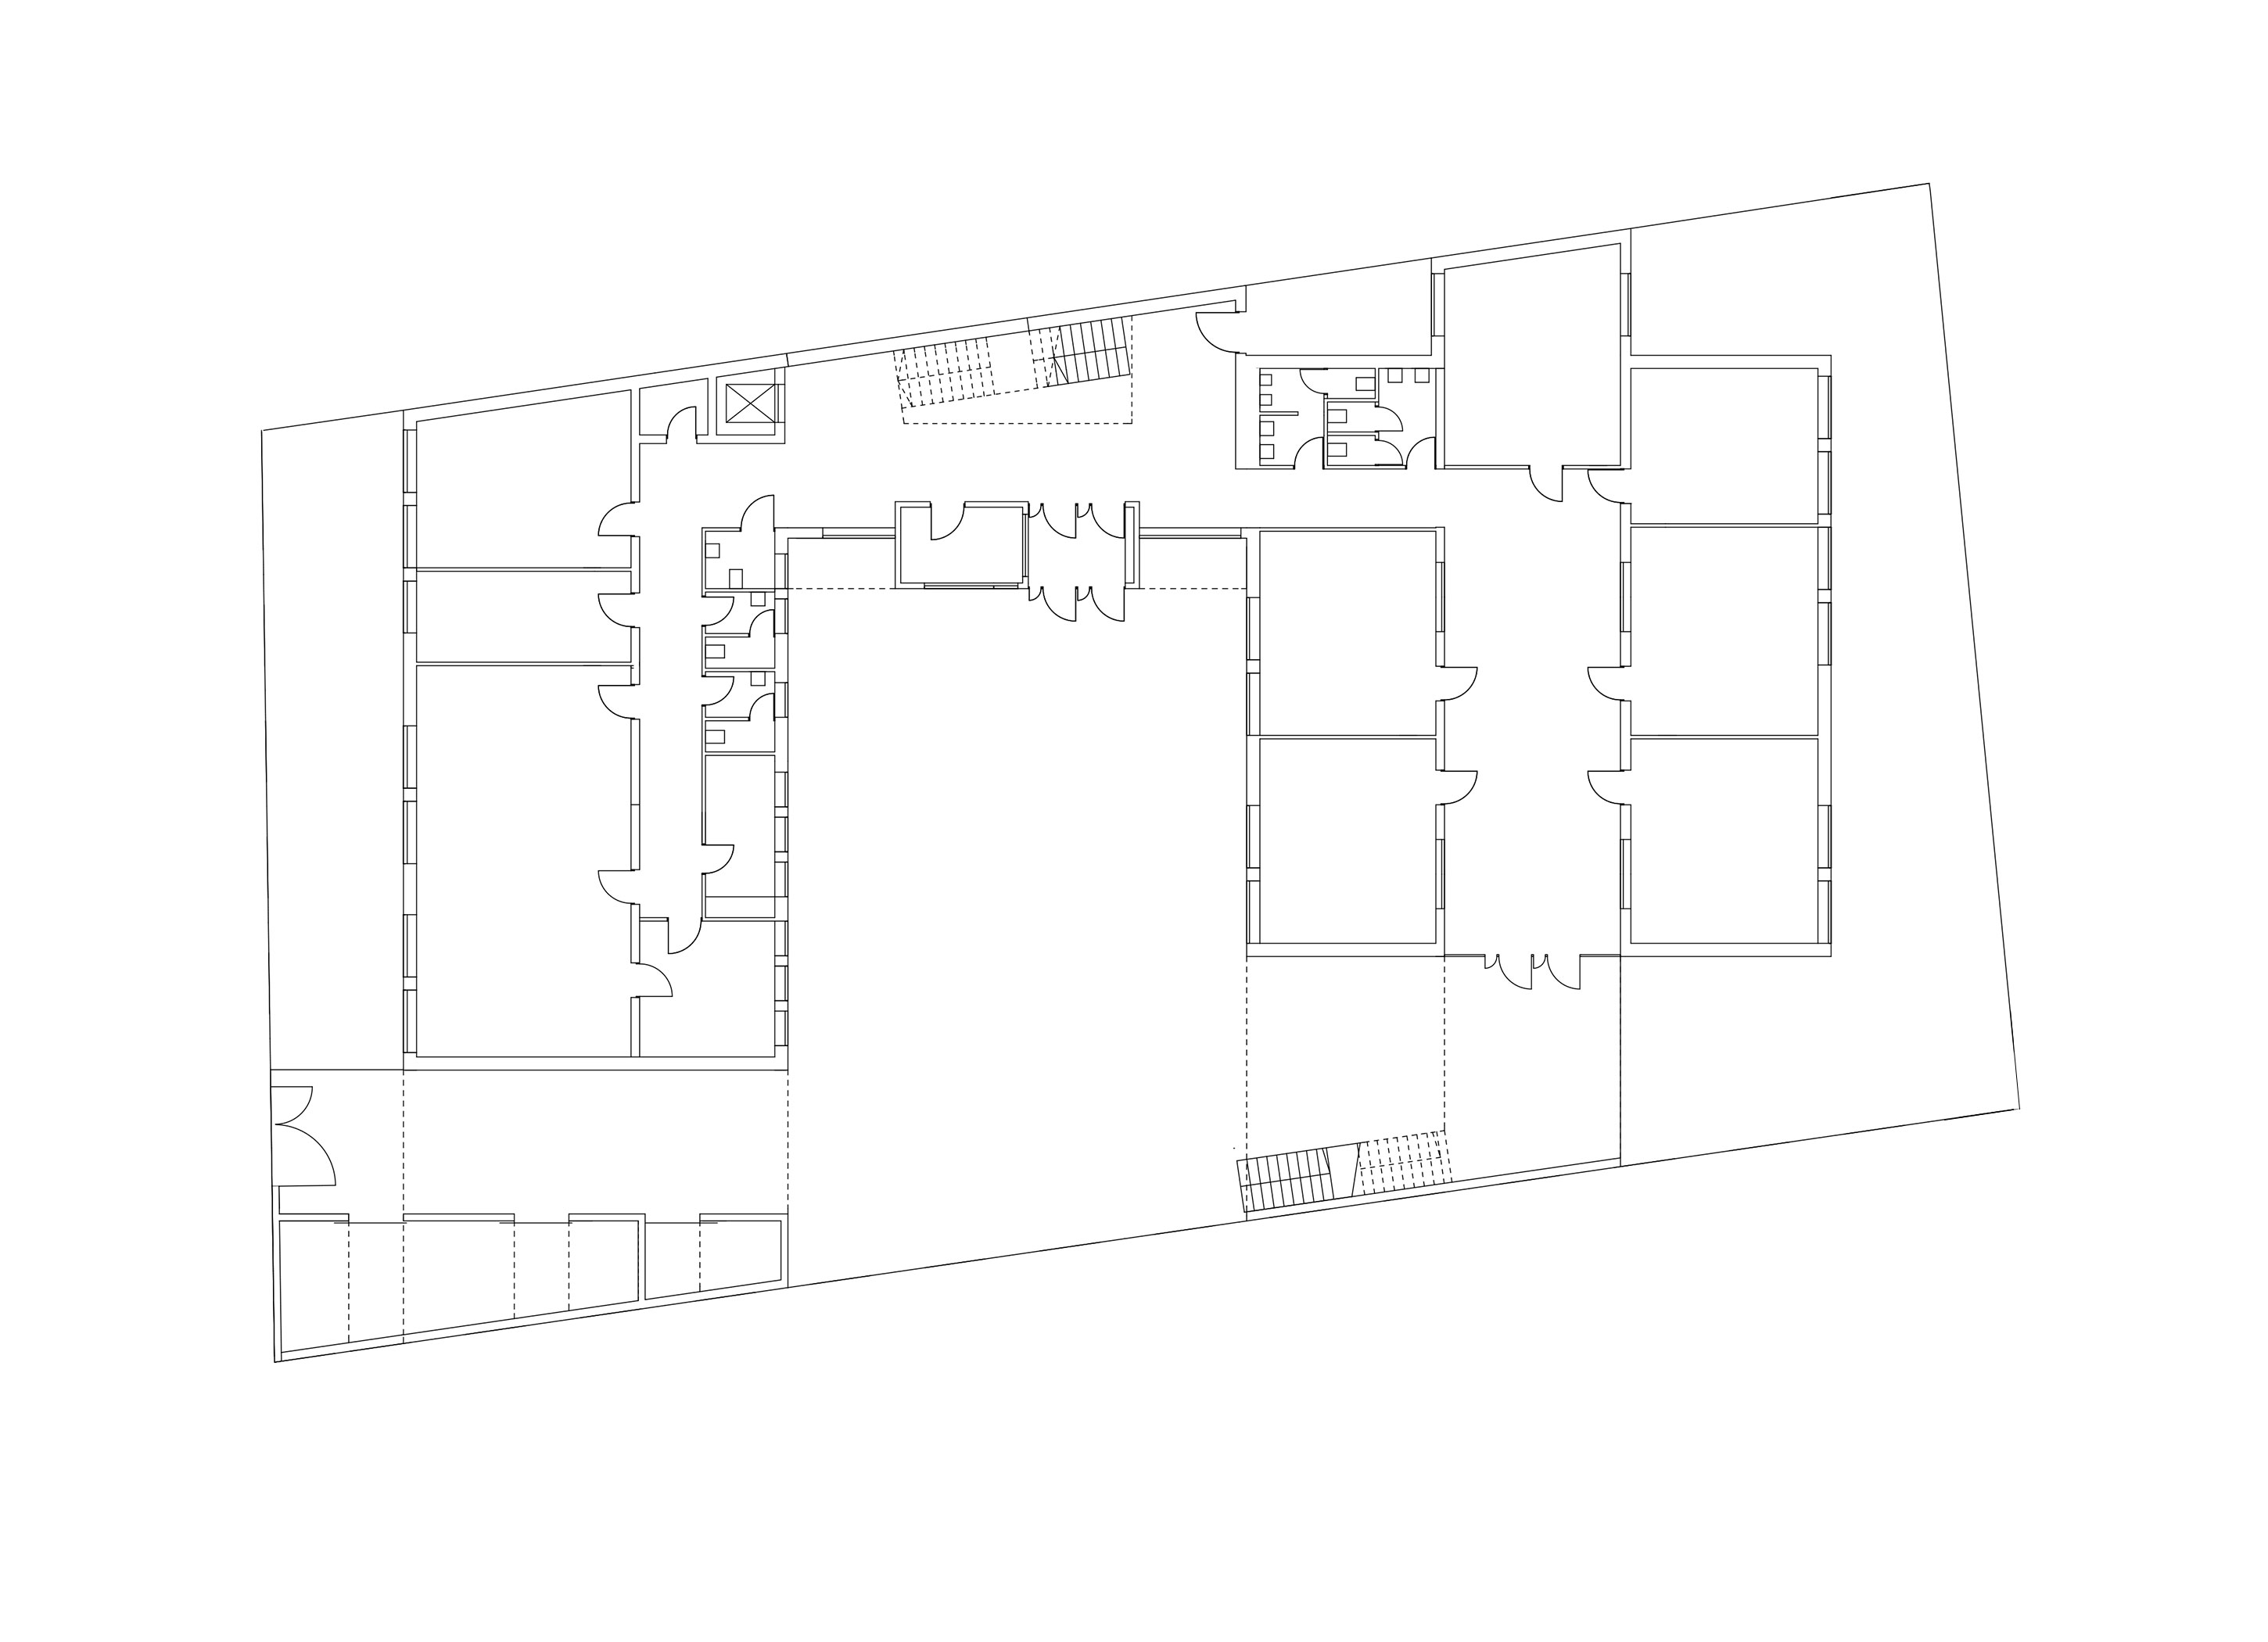 3h architecture special school csorna plan